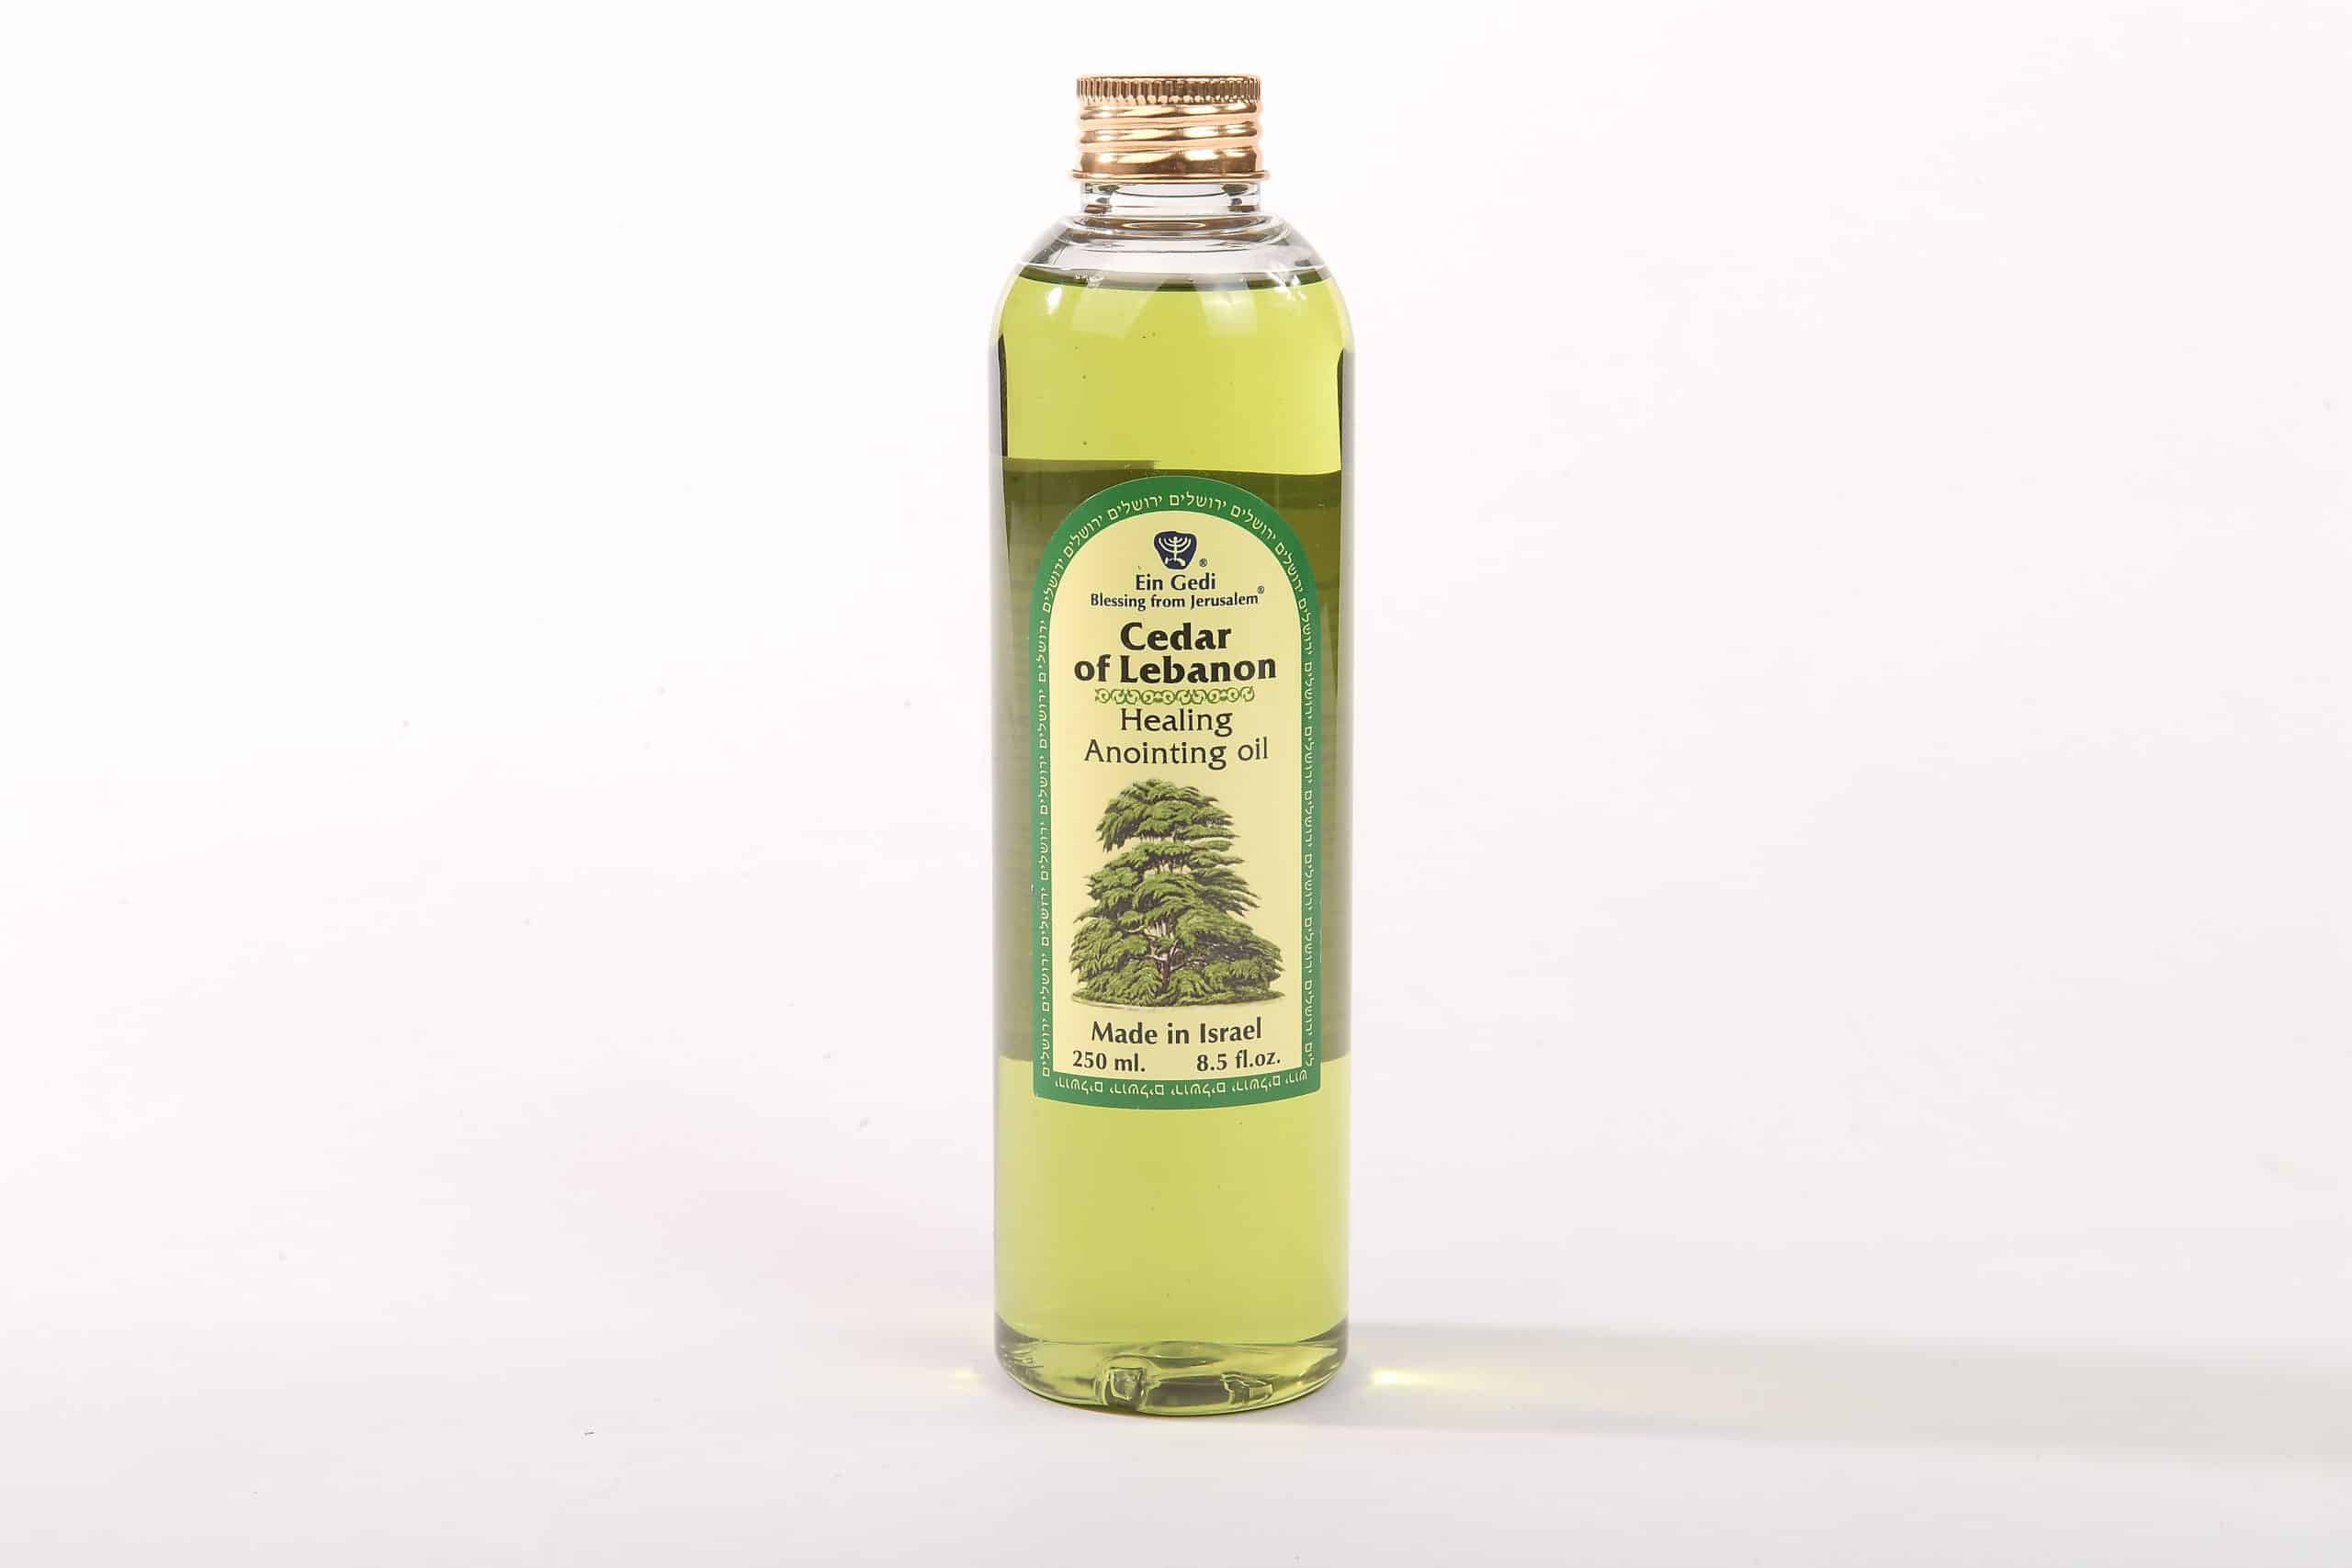 Cedar of Lebanon Anointing Oil - Healing - Made in Israel - 250ml